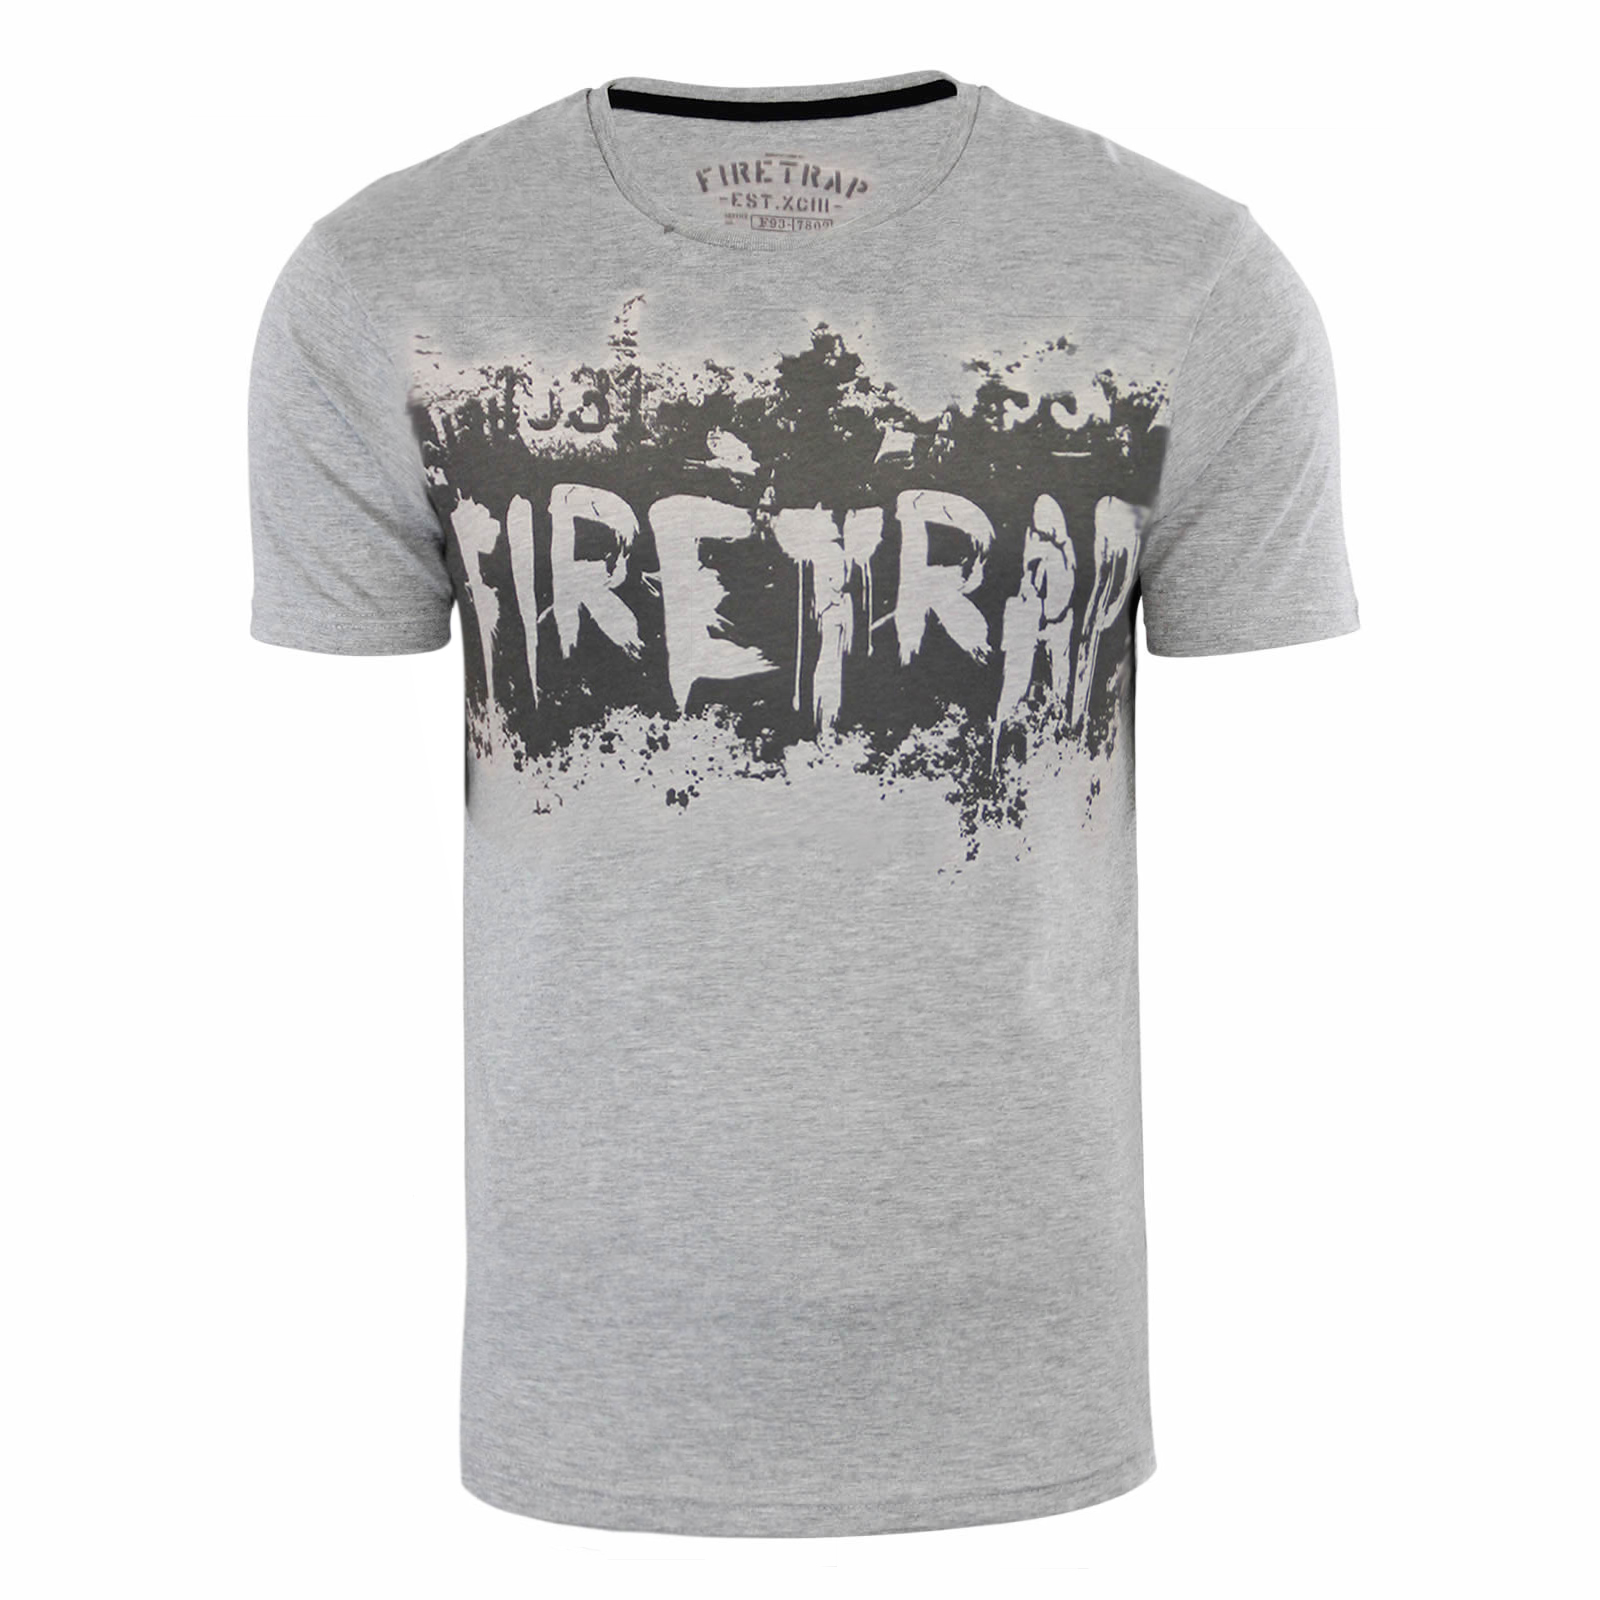 Mens t shirt firetrap various graphic printed cotton crew for Graphic t shirt printing company